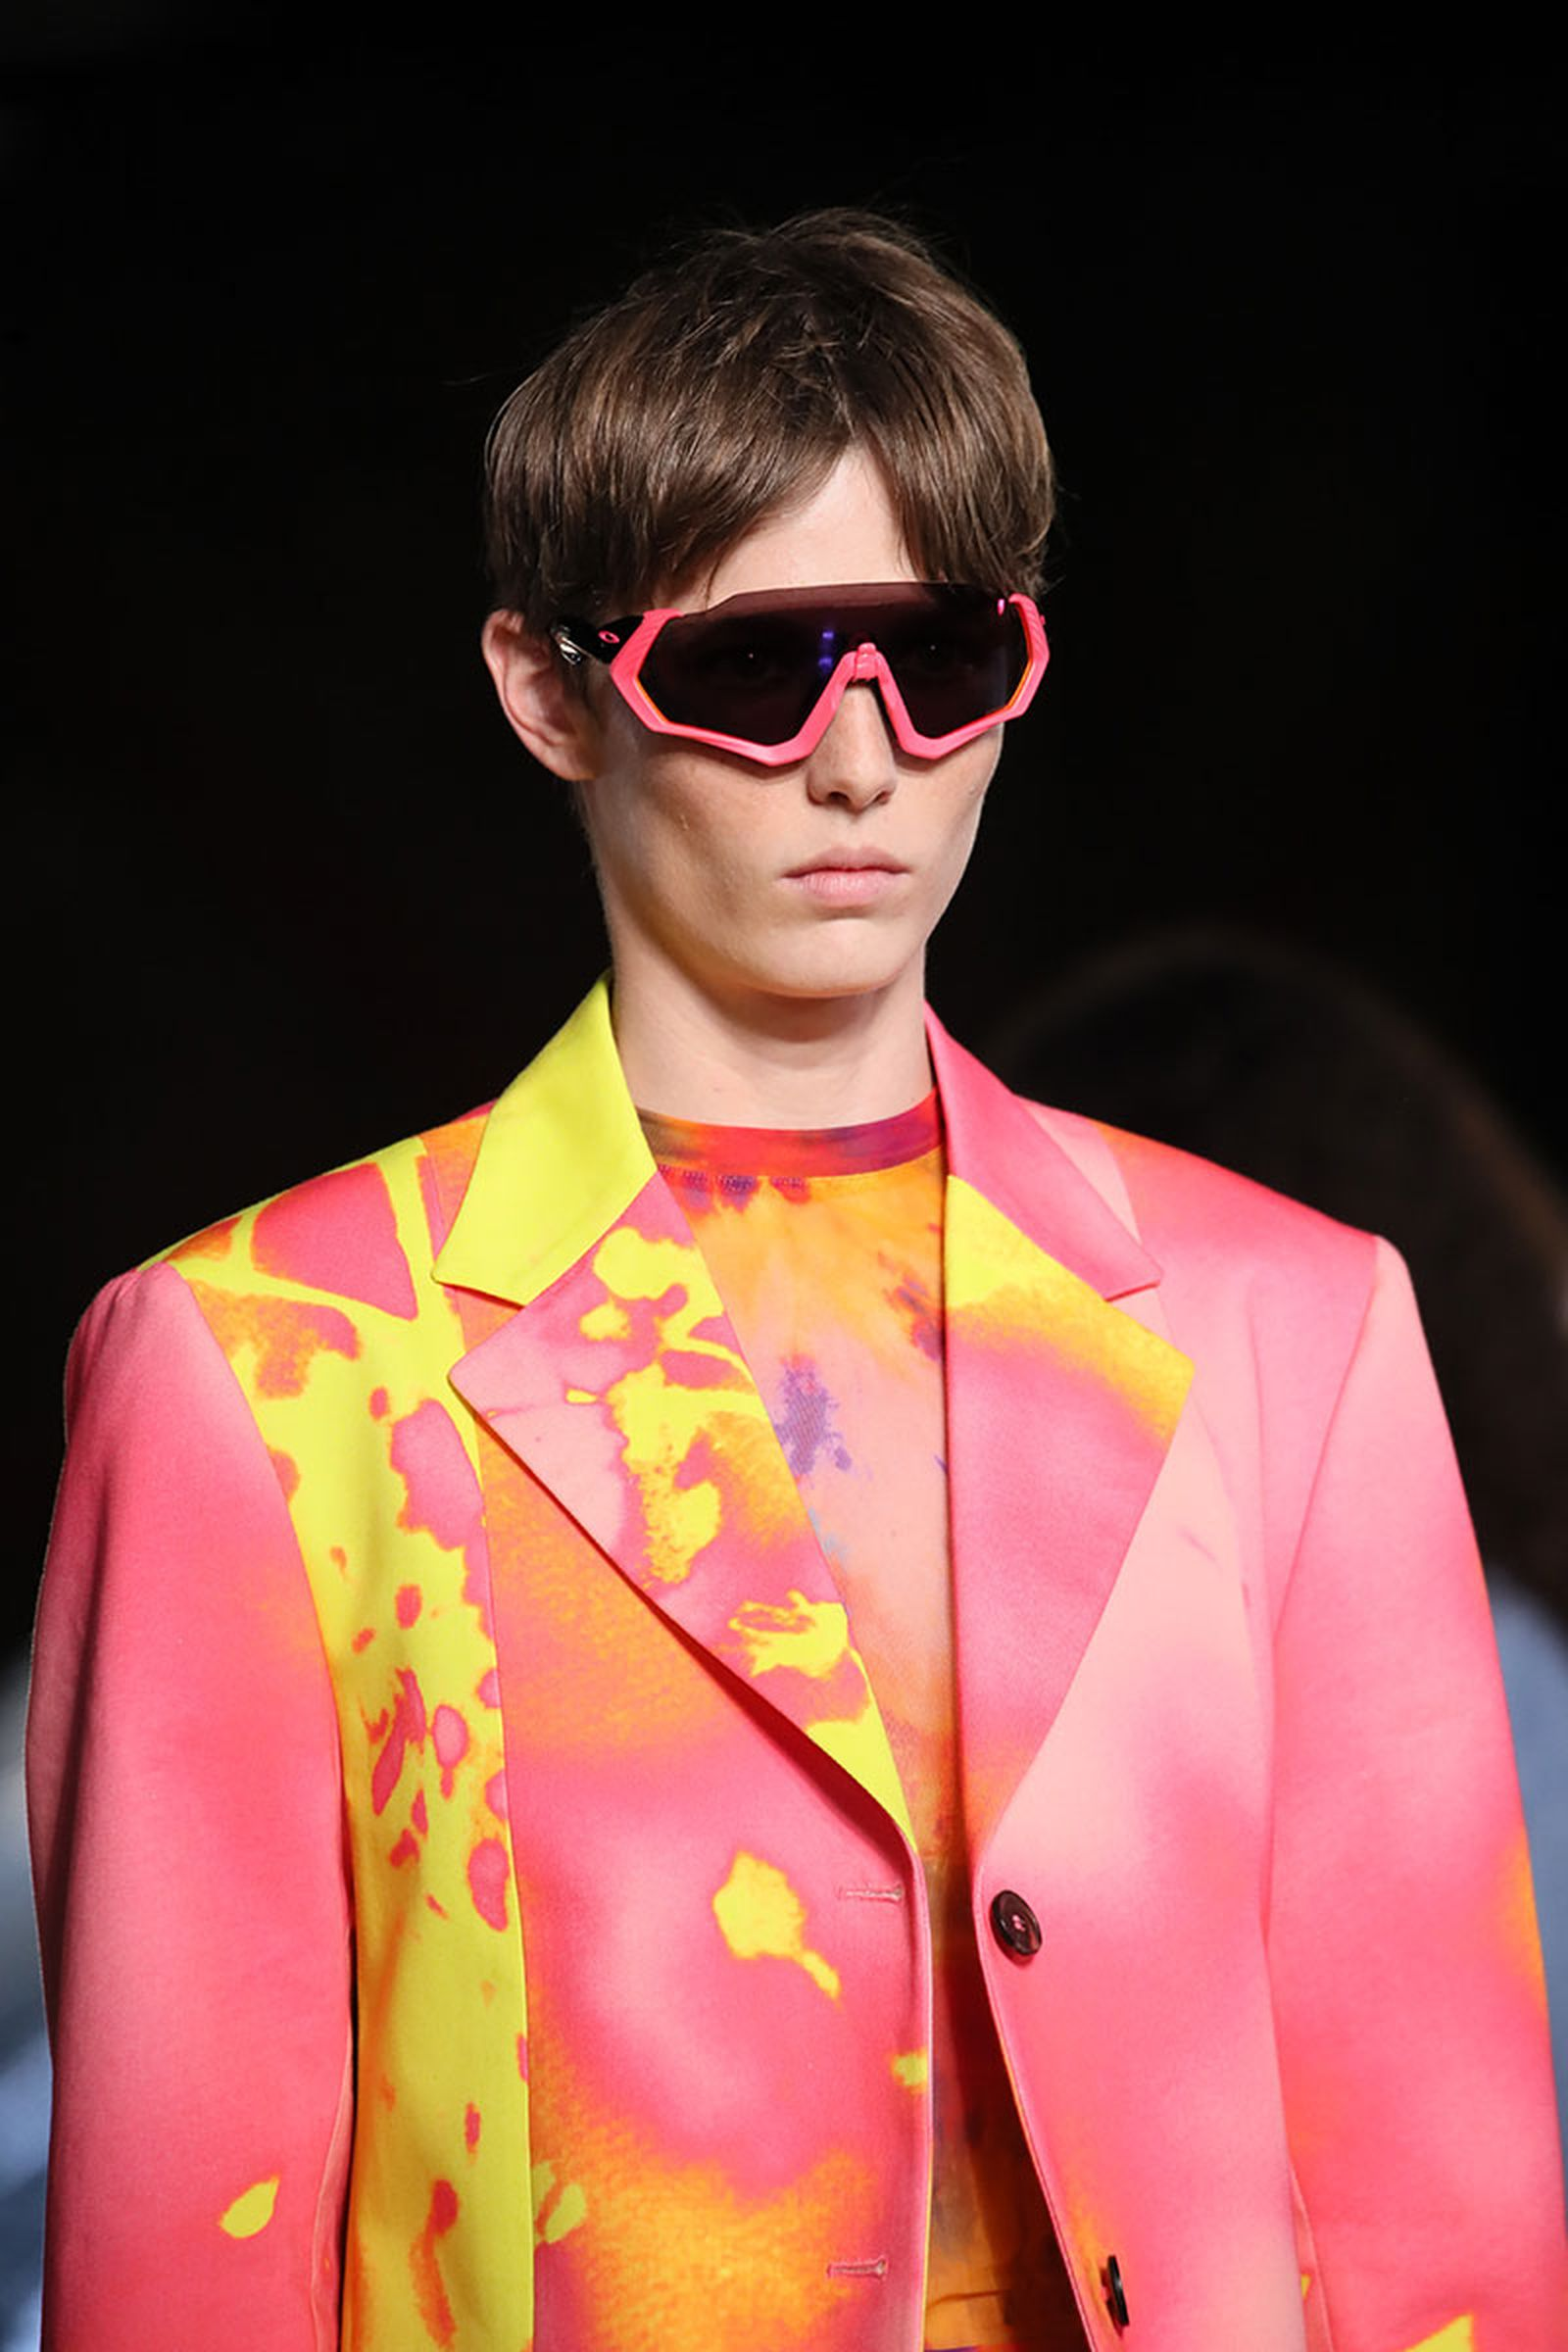 oaklet msmg runway Paris Fashion Week SS19 Pharrell Williams cycling sunglasses